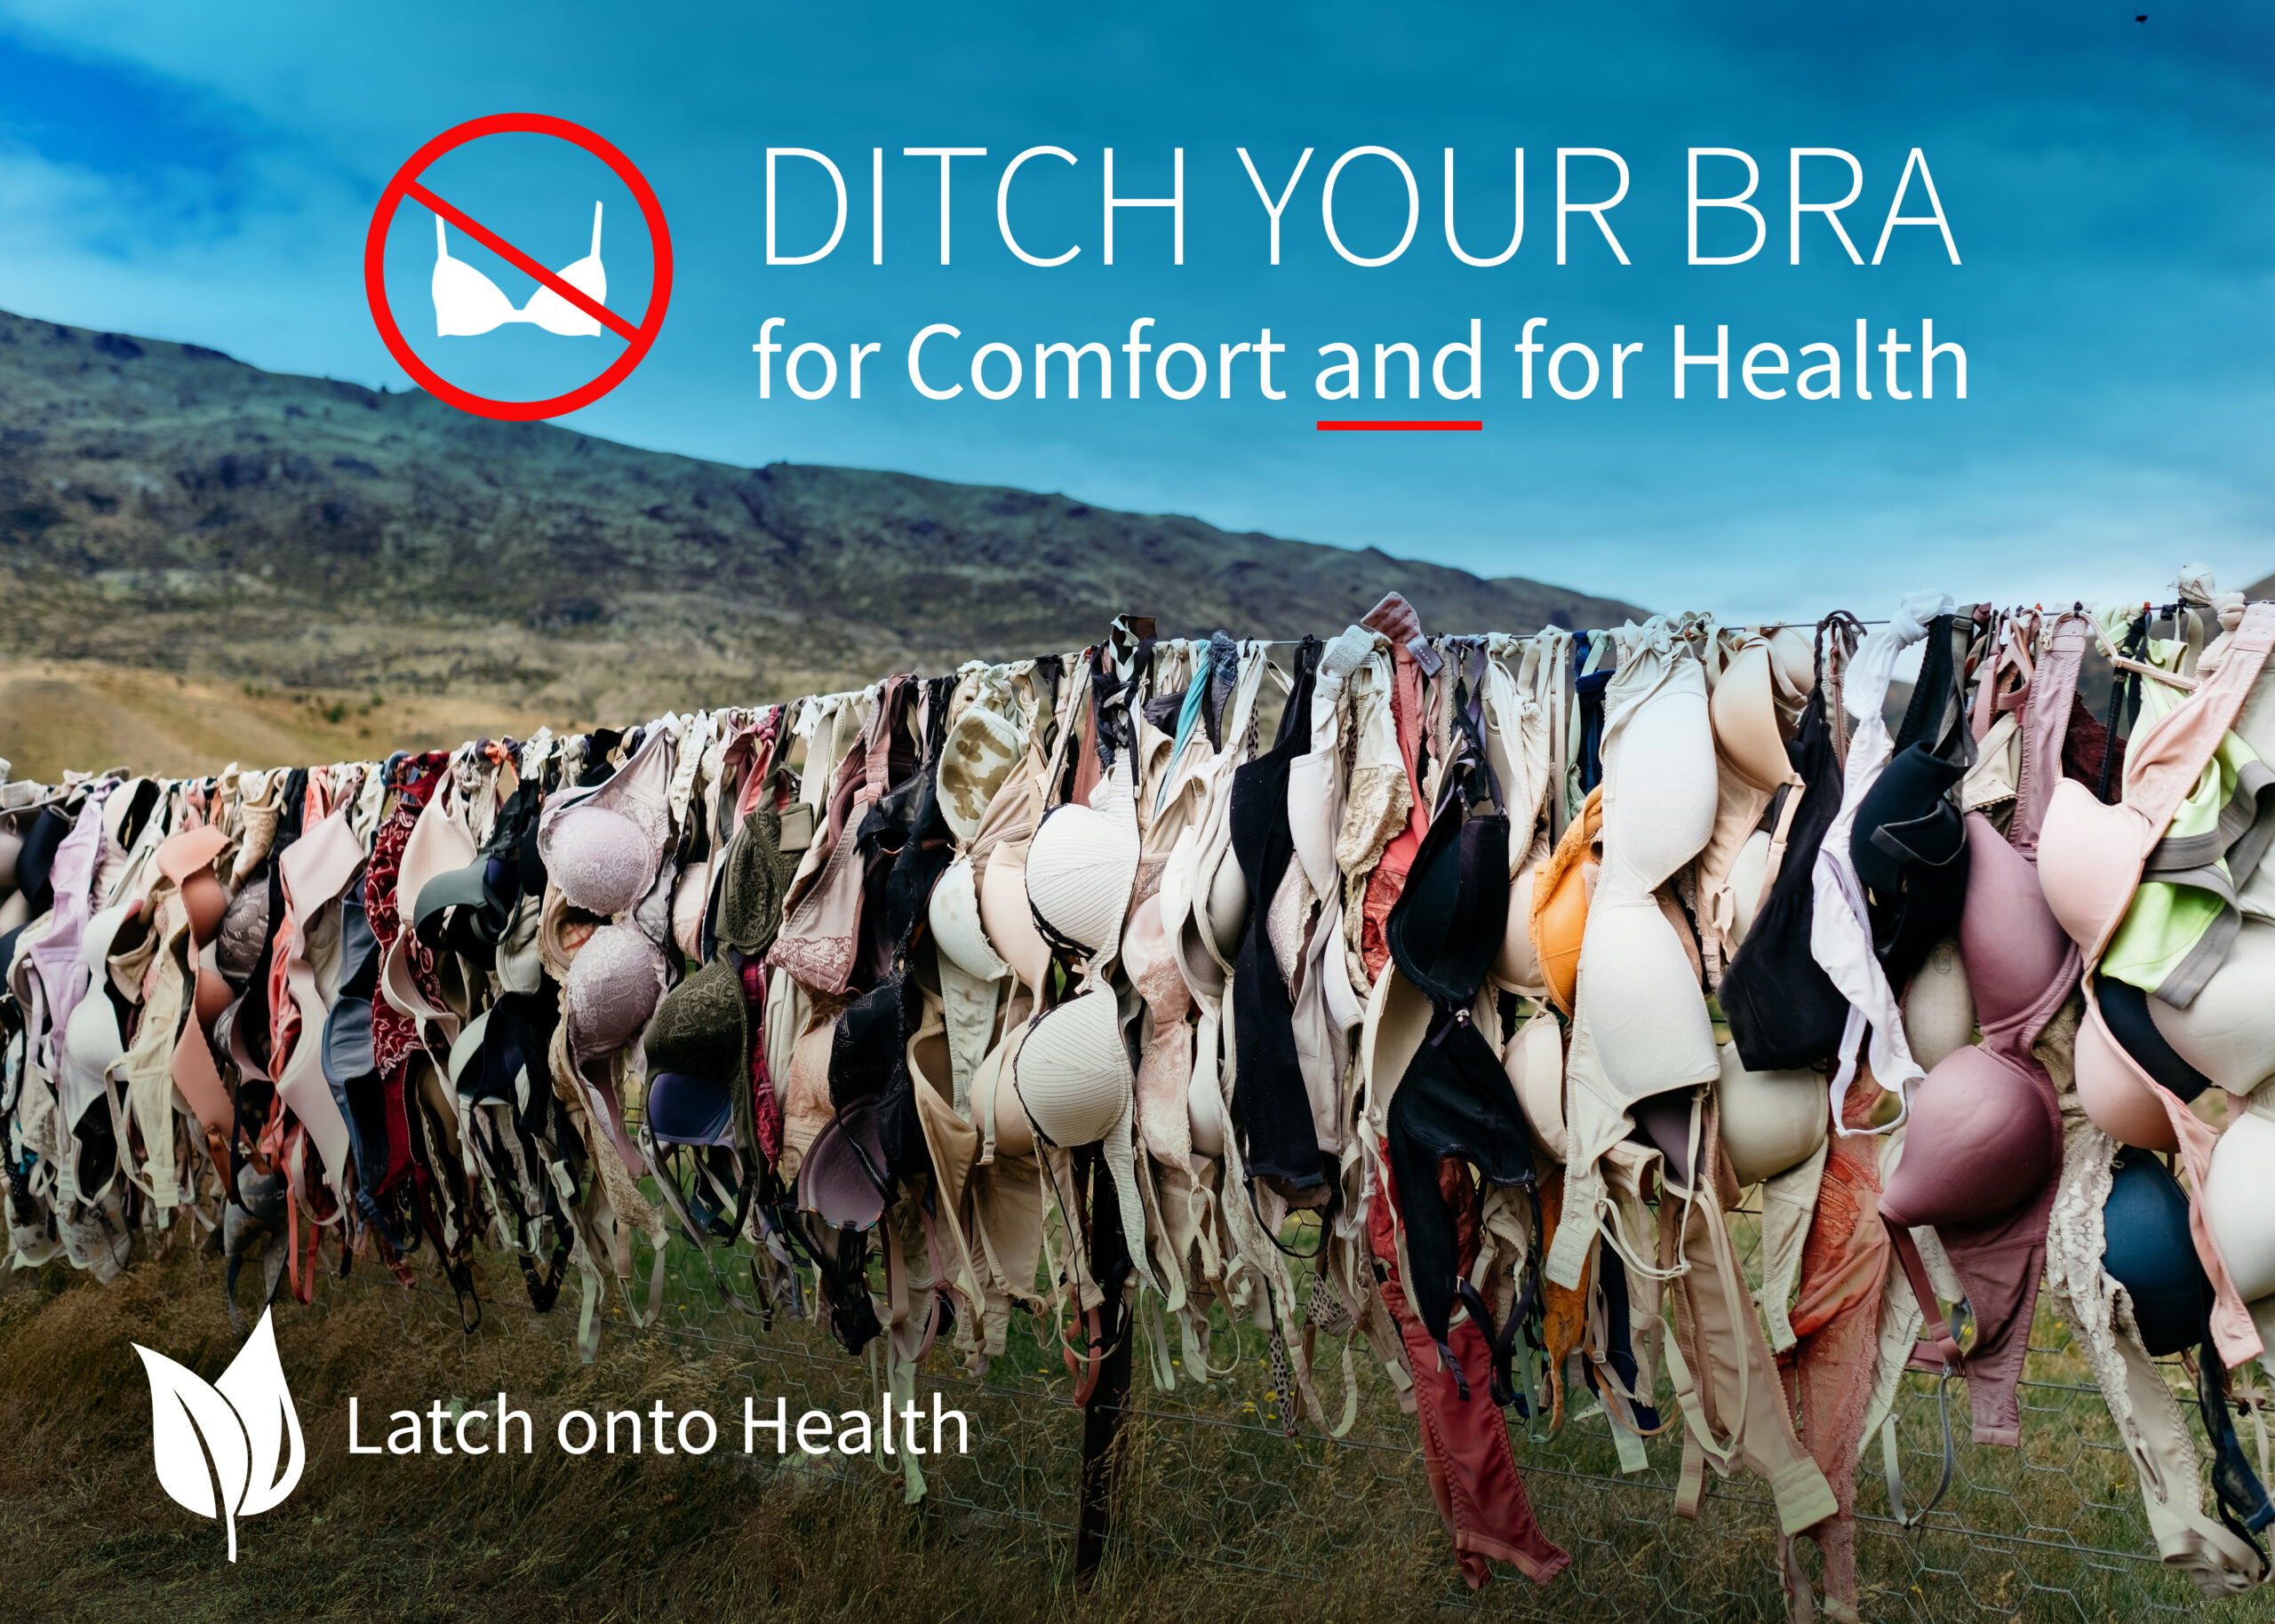 Ditch Your Bra - Latch onto Health